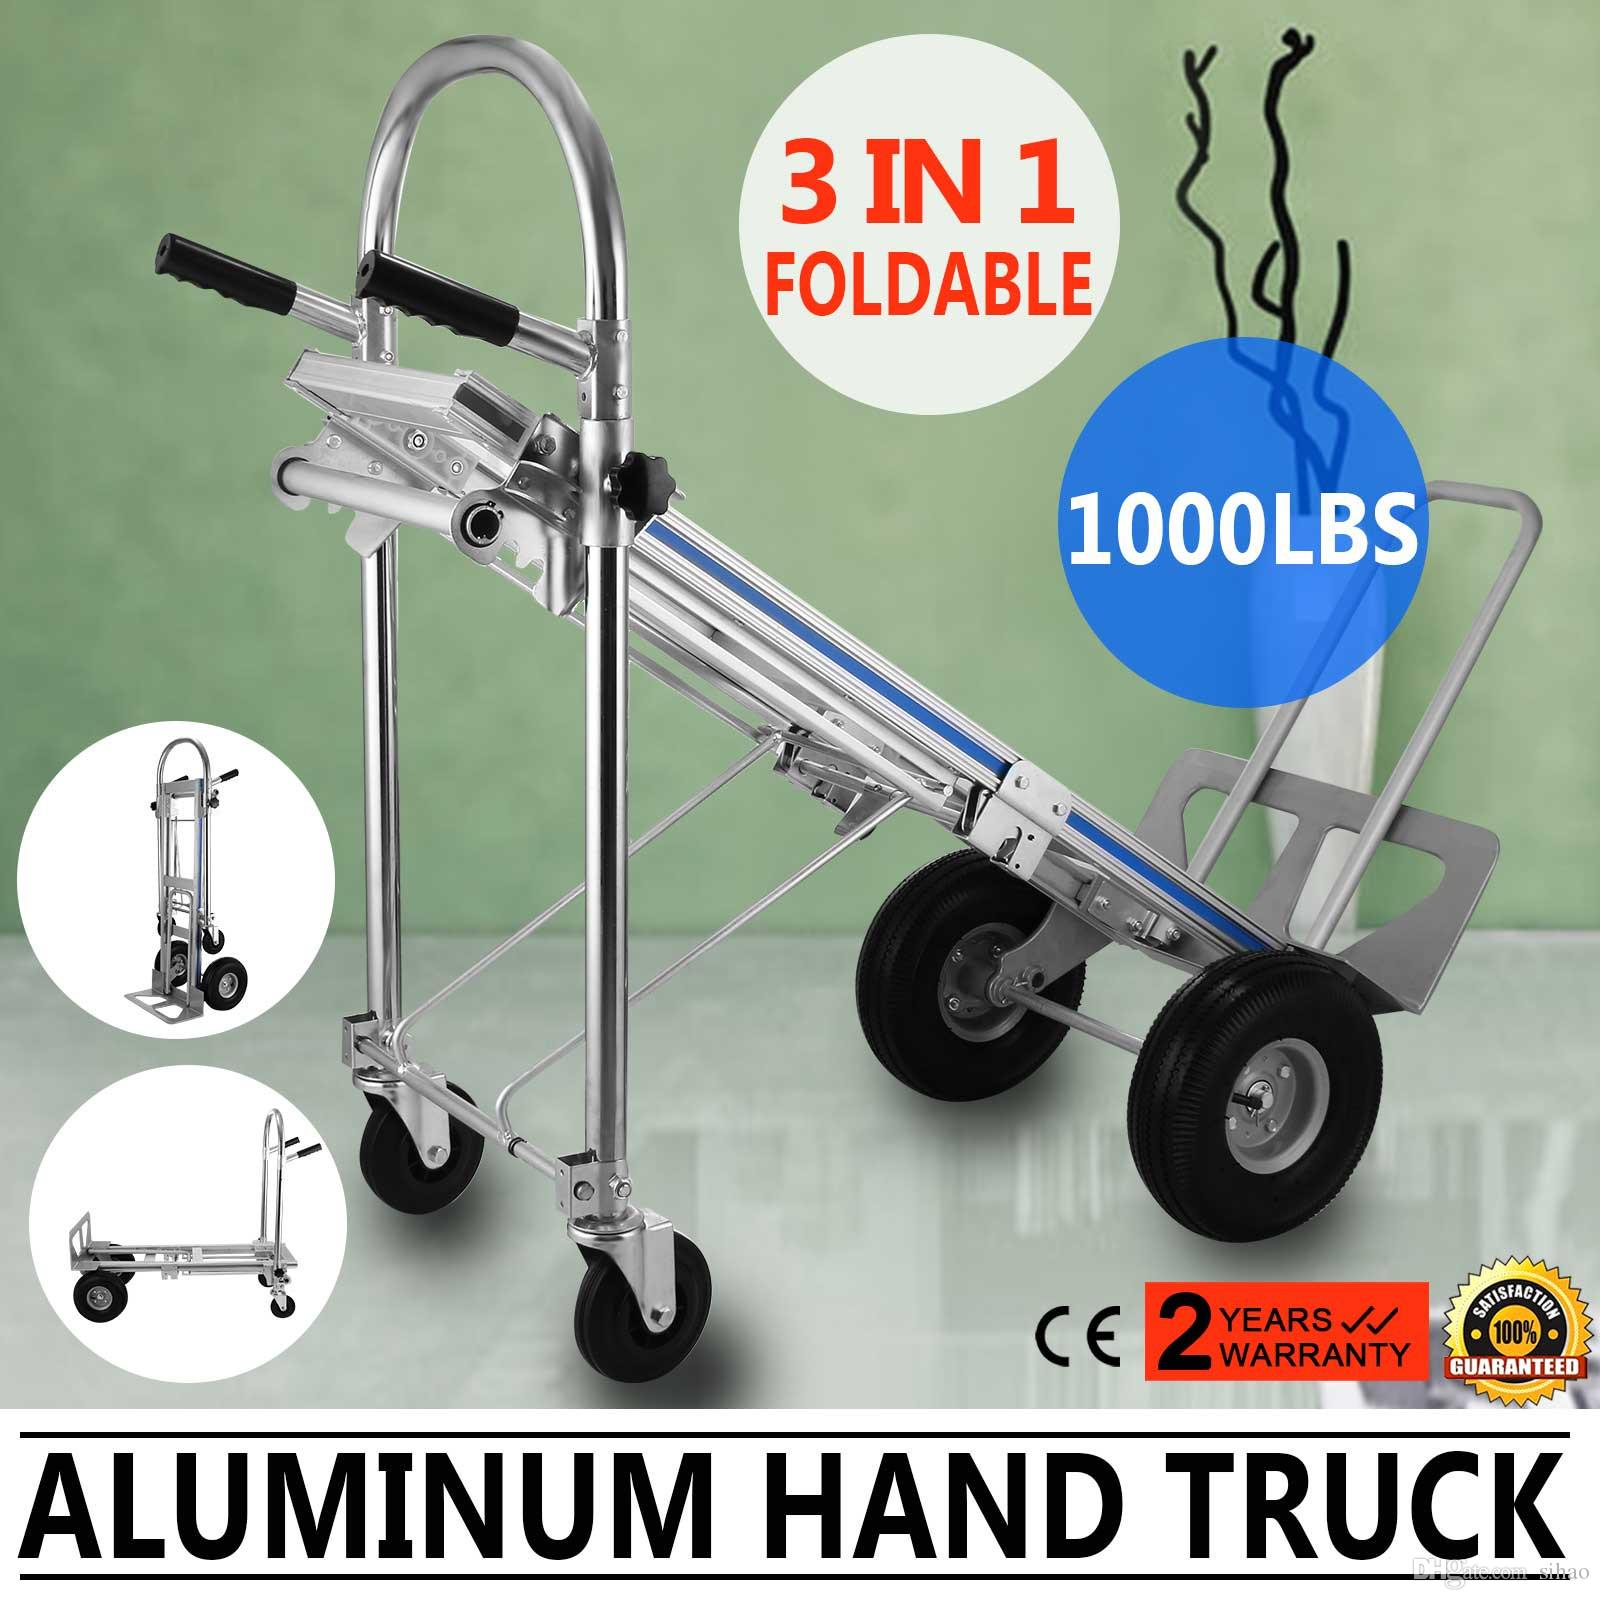 4cd068f21ec5 Aluminum Hand Truck 3 In 1 Folding Hand Trucks 1000LBS Convertible Hand  Truck and Dolly Utility Cart Heavy Duty with Flat Wheels (3 in 1)